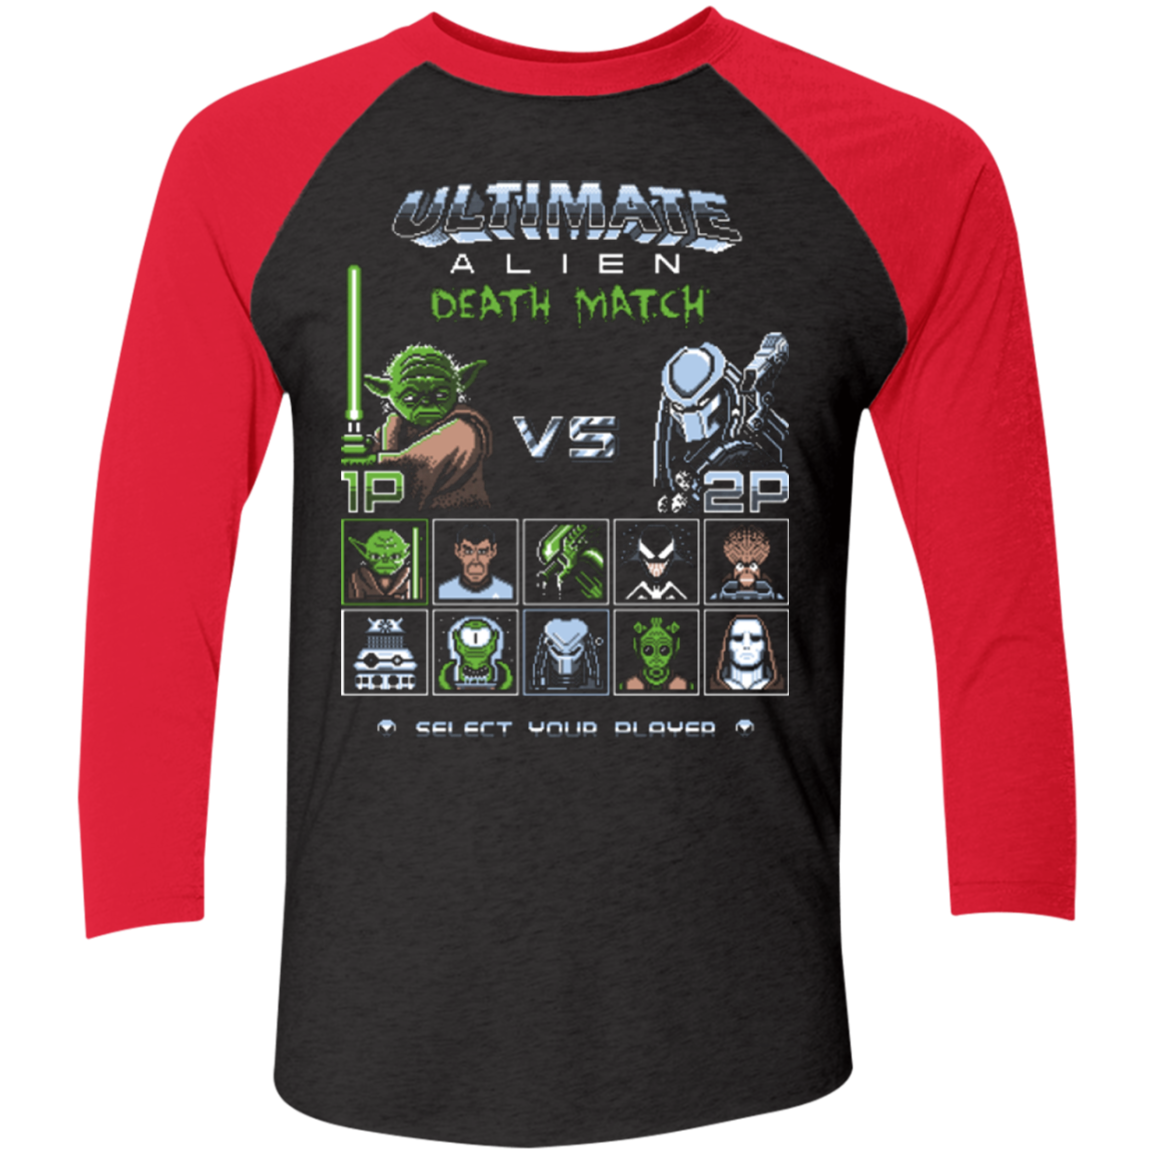 Ultimate alien deathmatch Men's Triblend 3/4 Sleeve